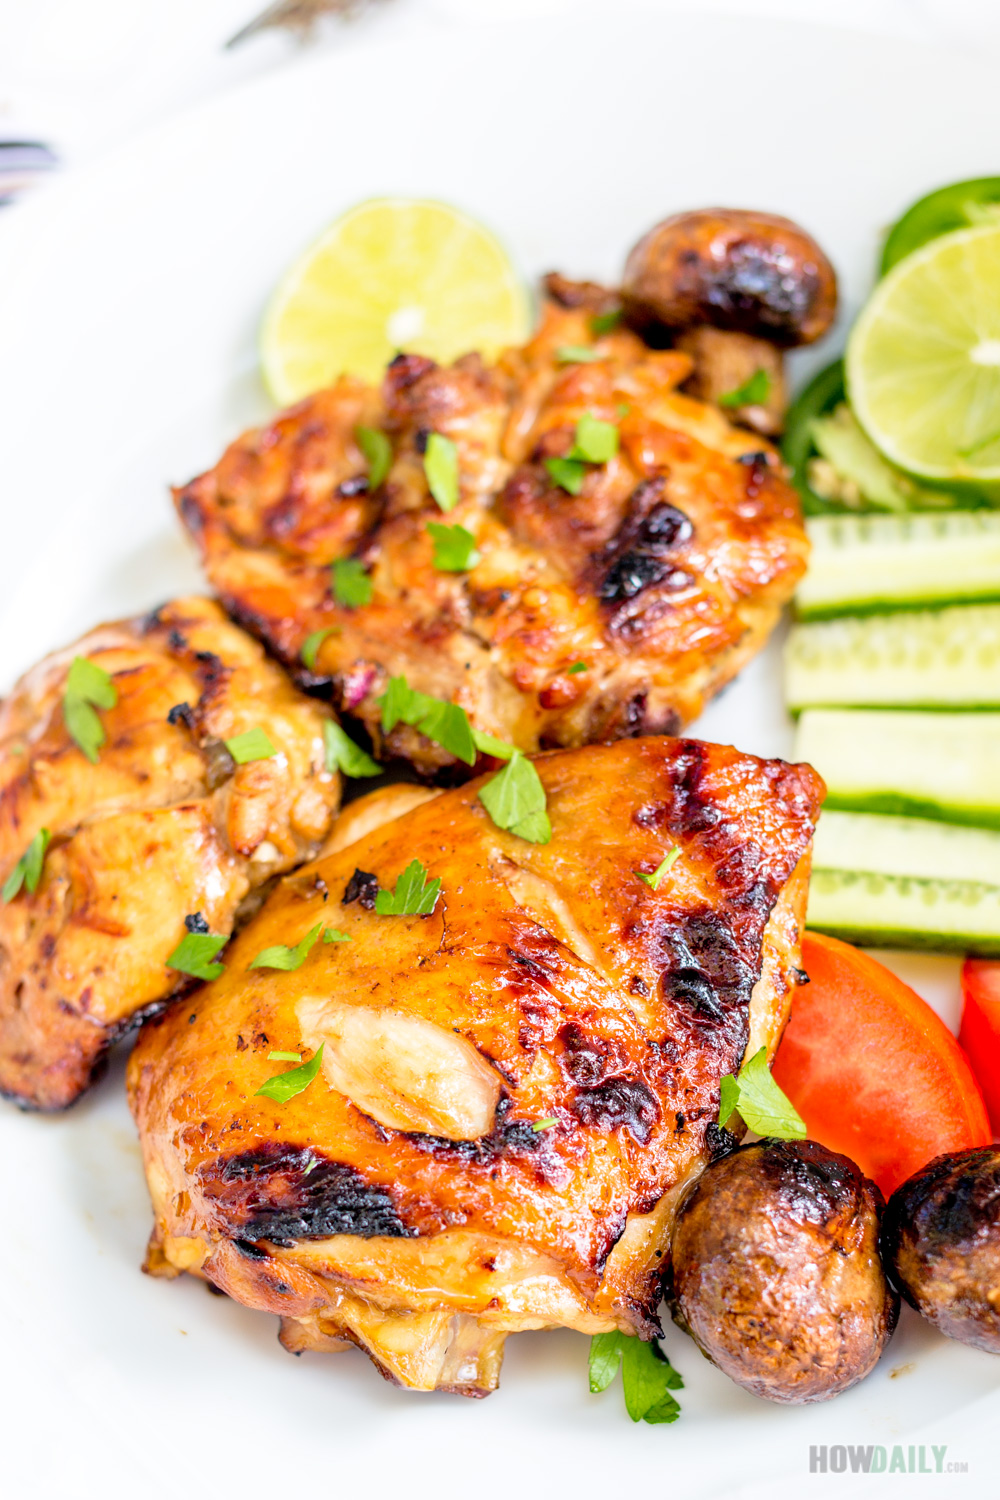 Easy Chicken Marinade Recipe For Grilled Oven Baked Or Fried Chicken